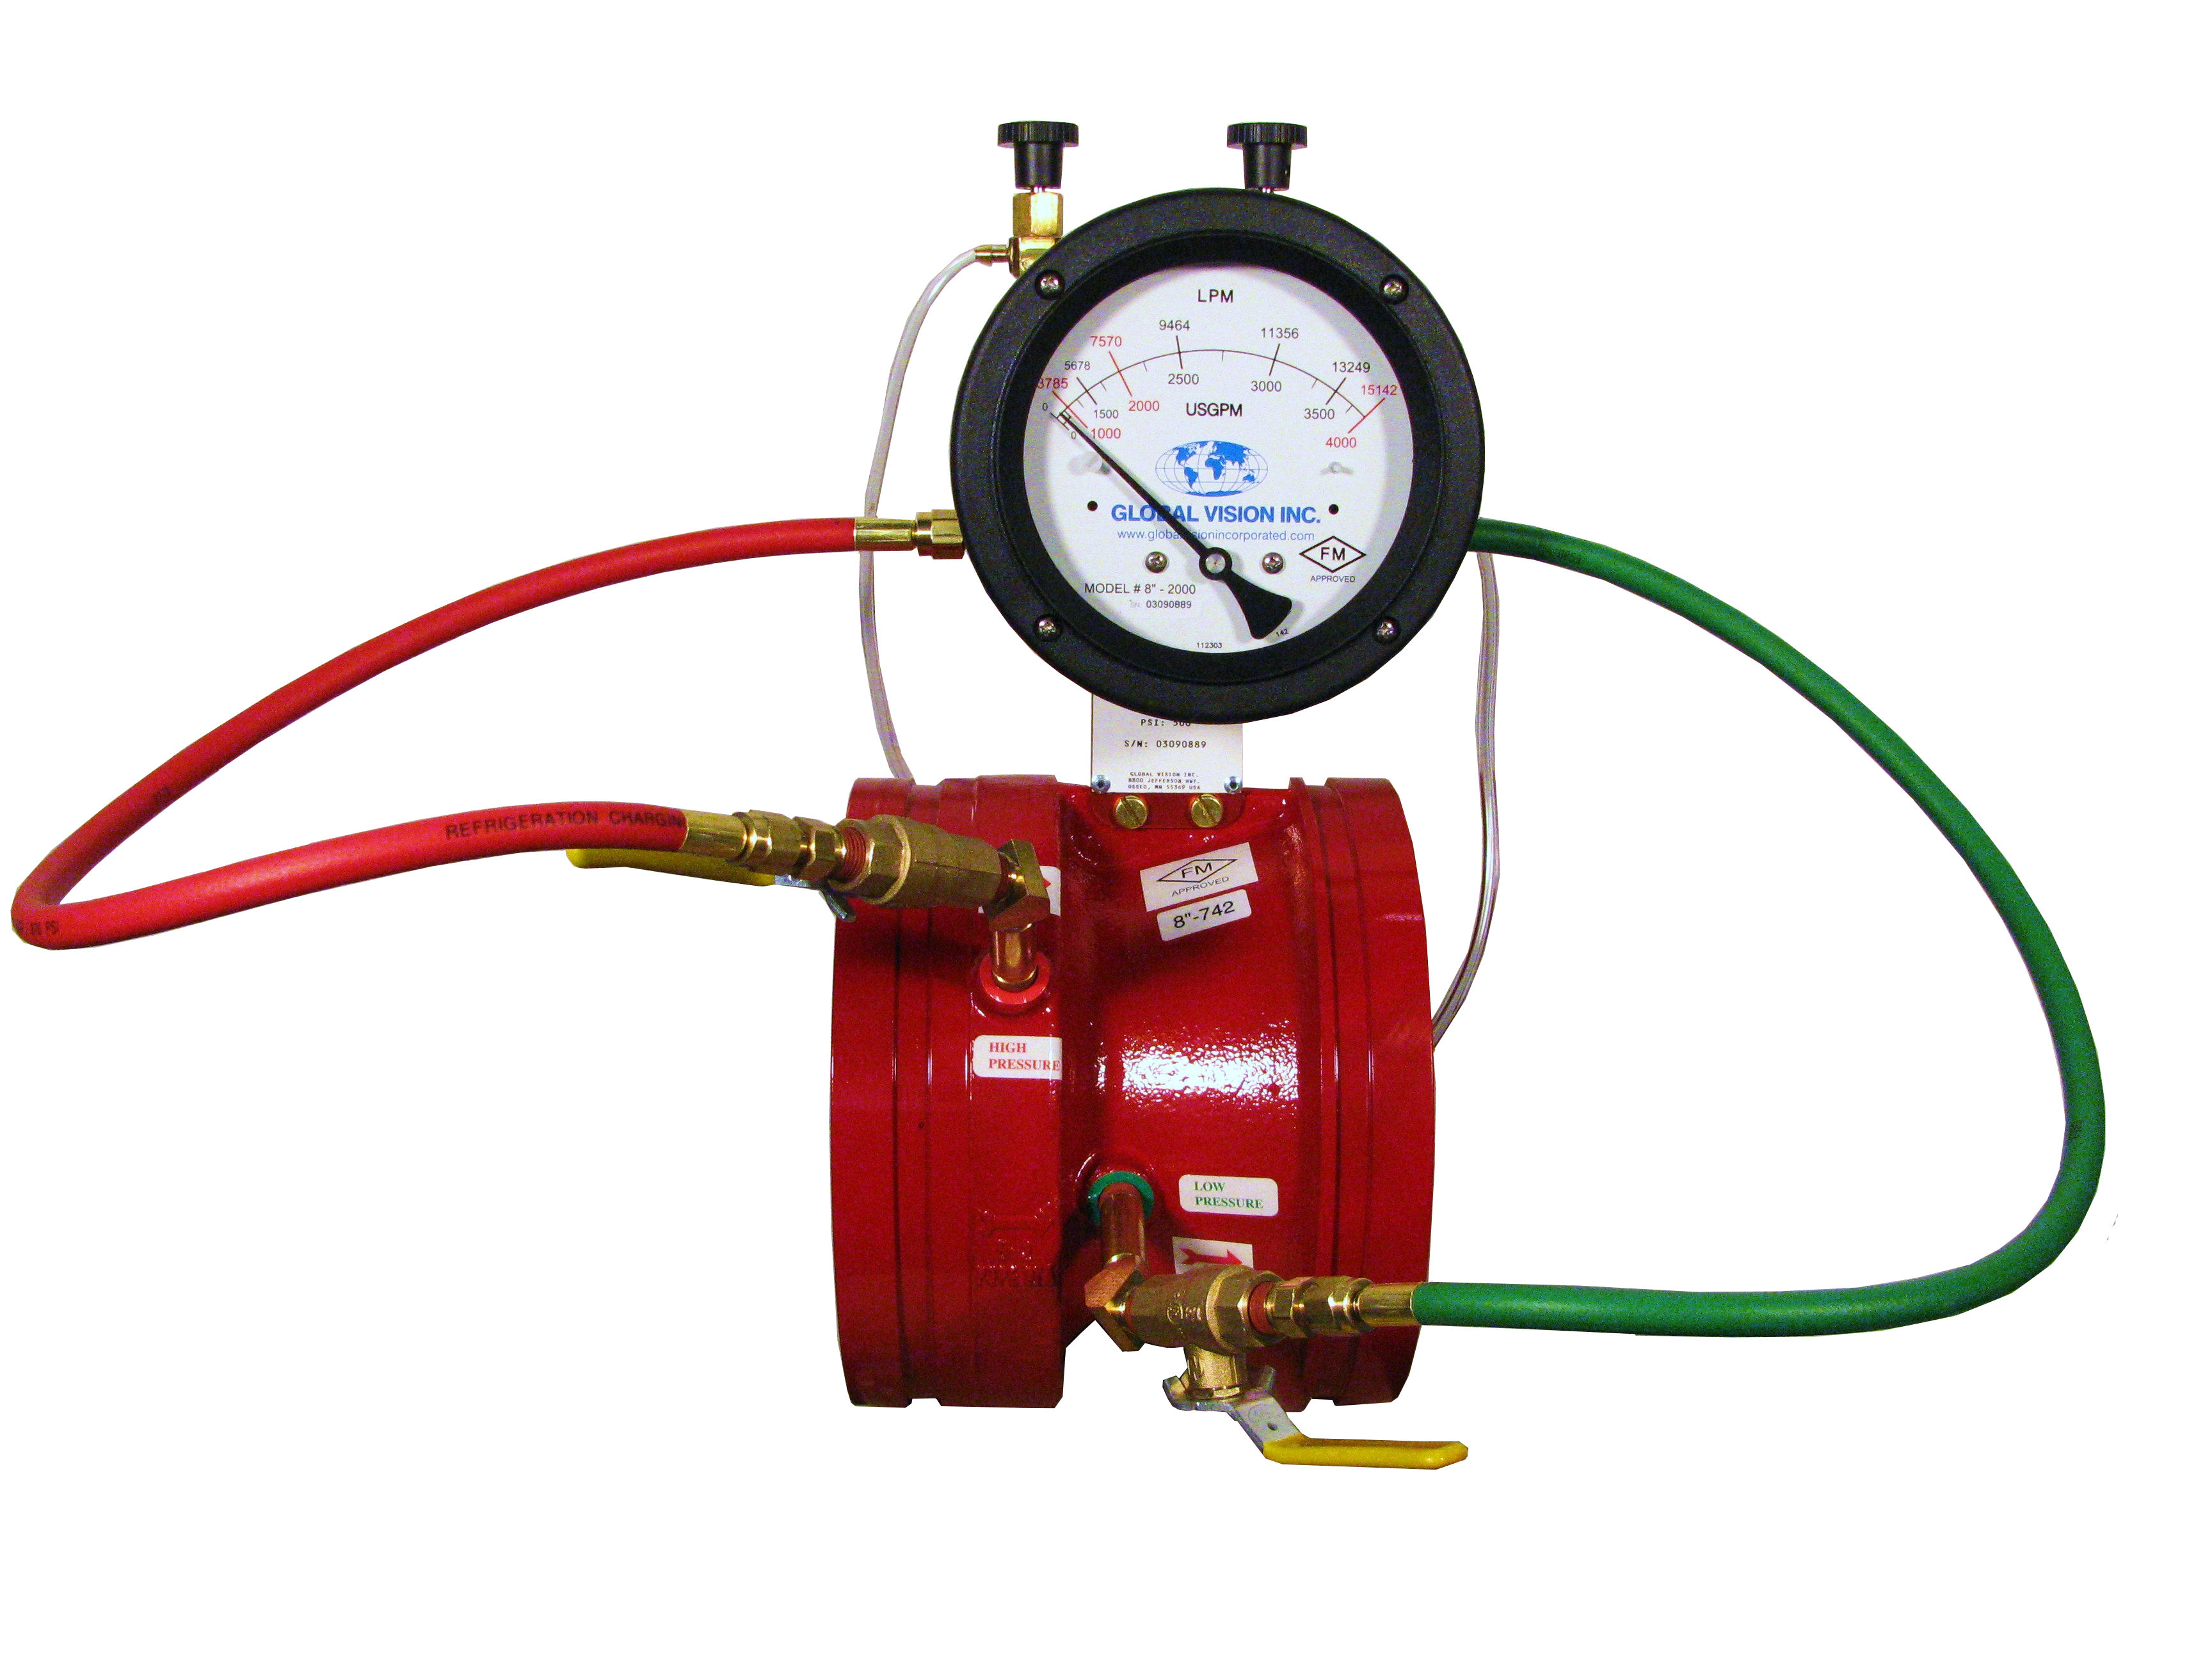 Global Vision Fire Pump Test Meters